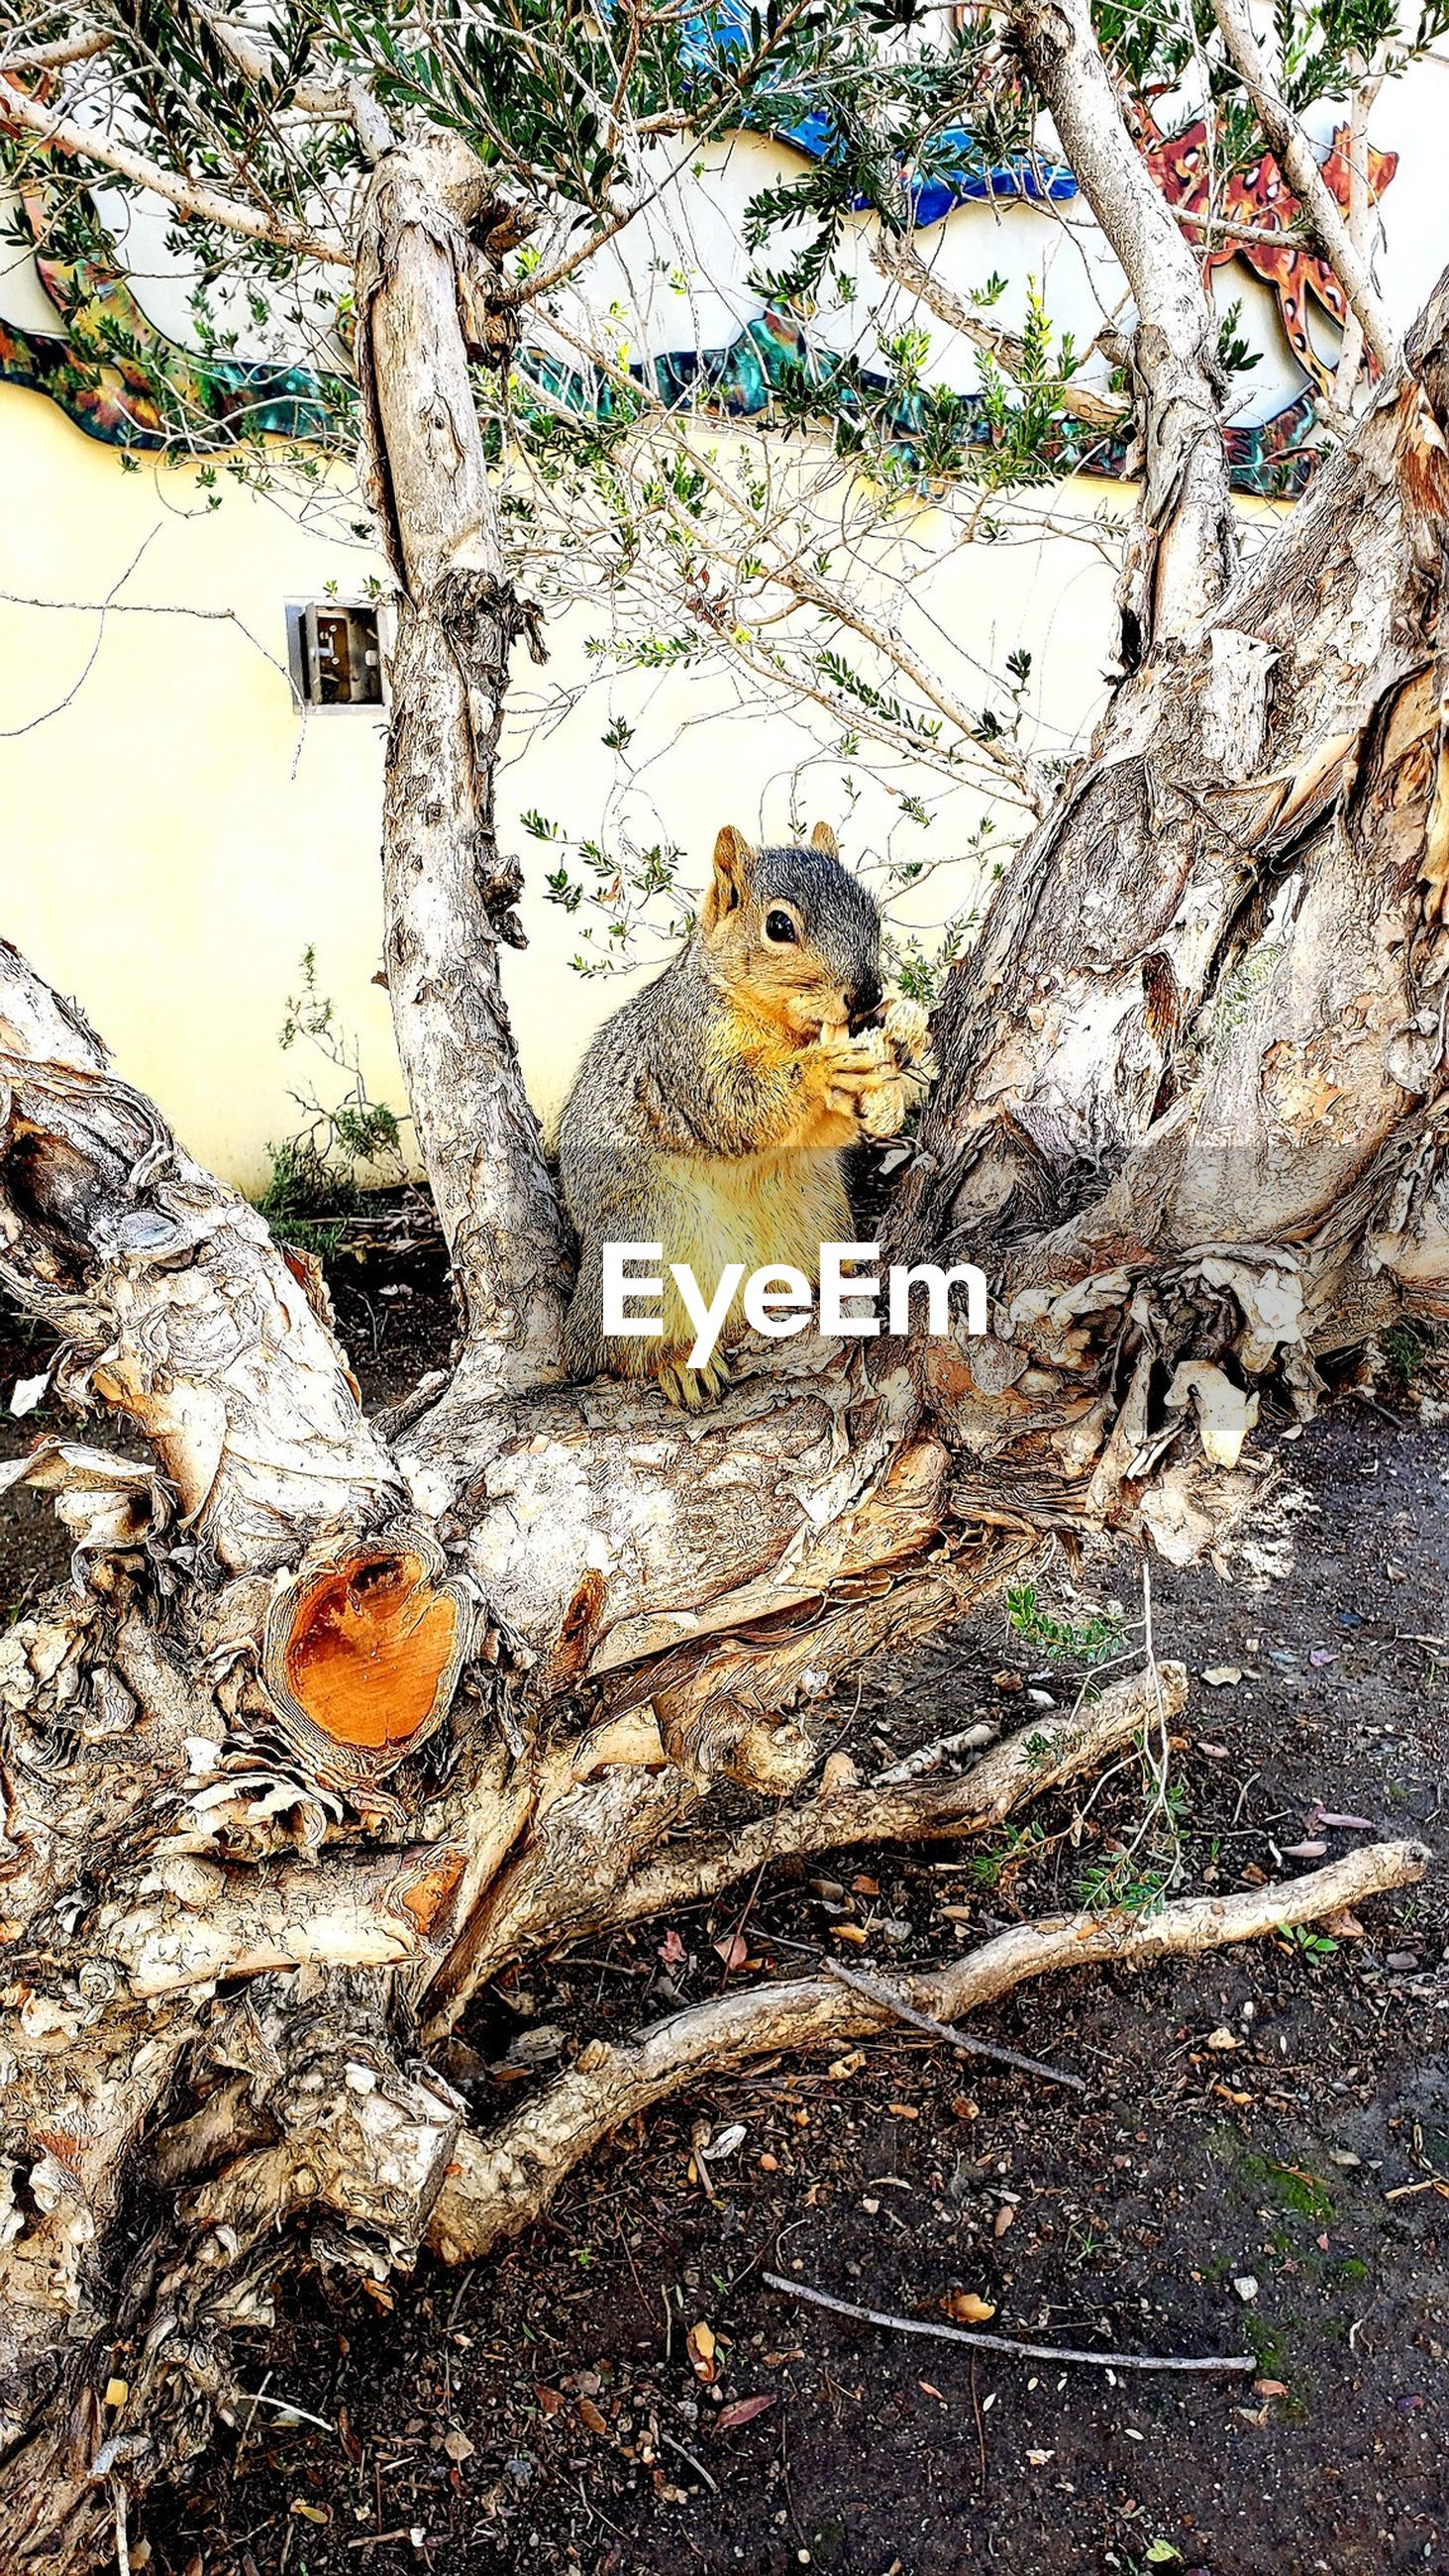 VIEW OF SQUIRREL ON TREE BRANCH